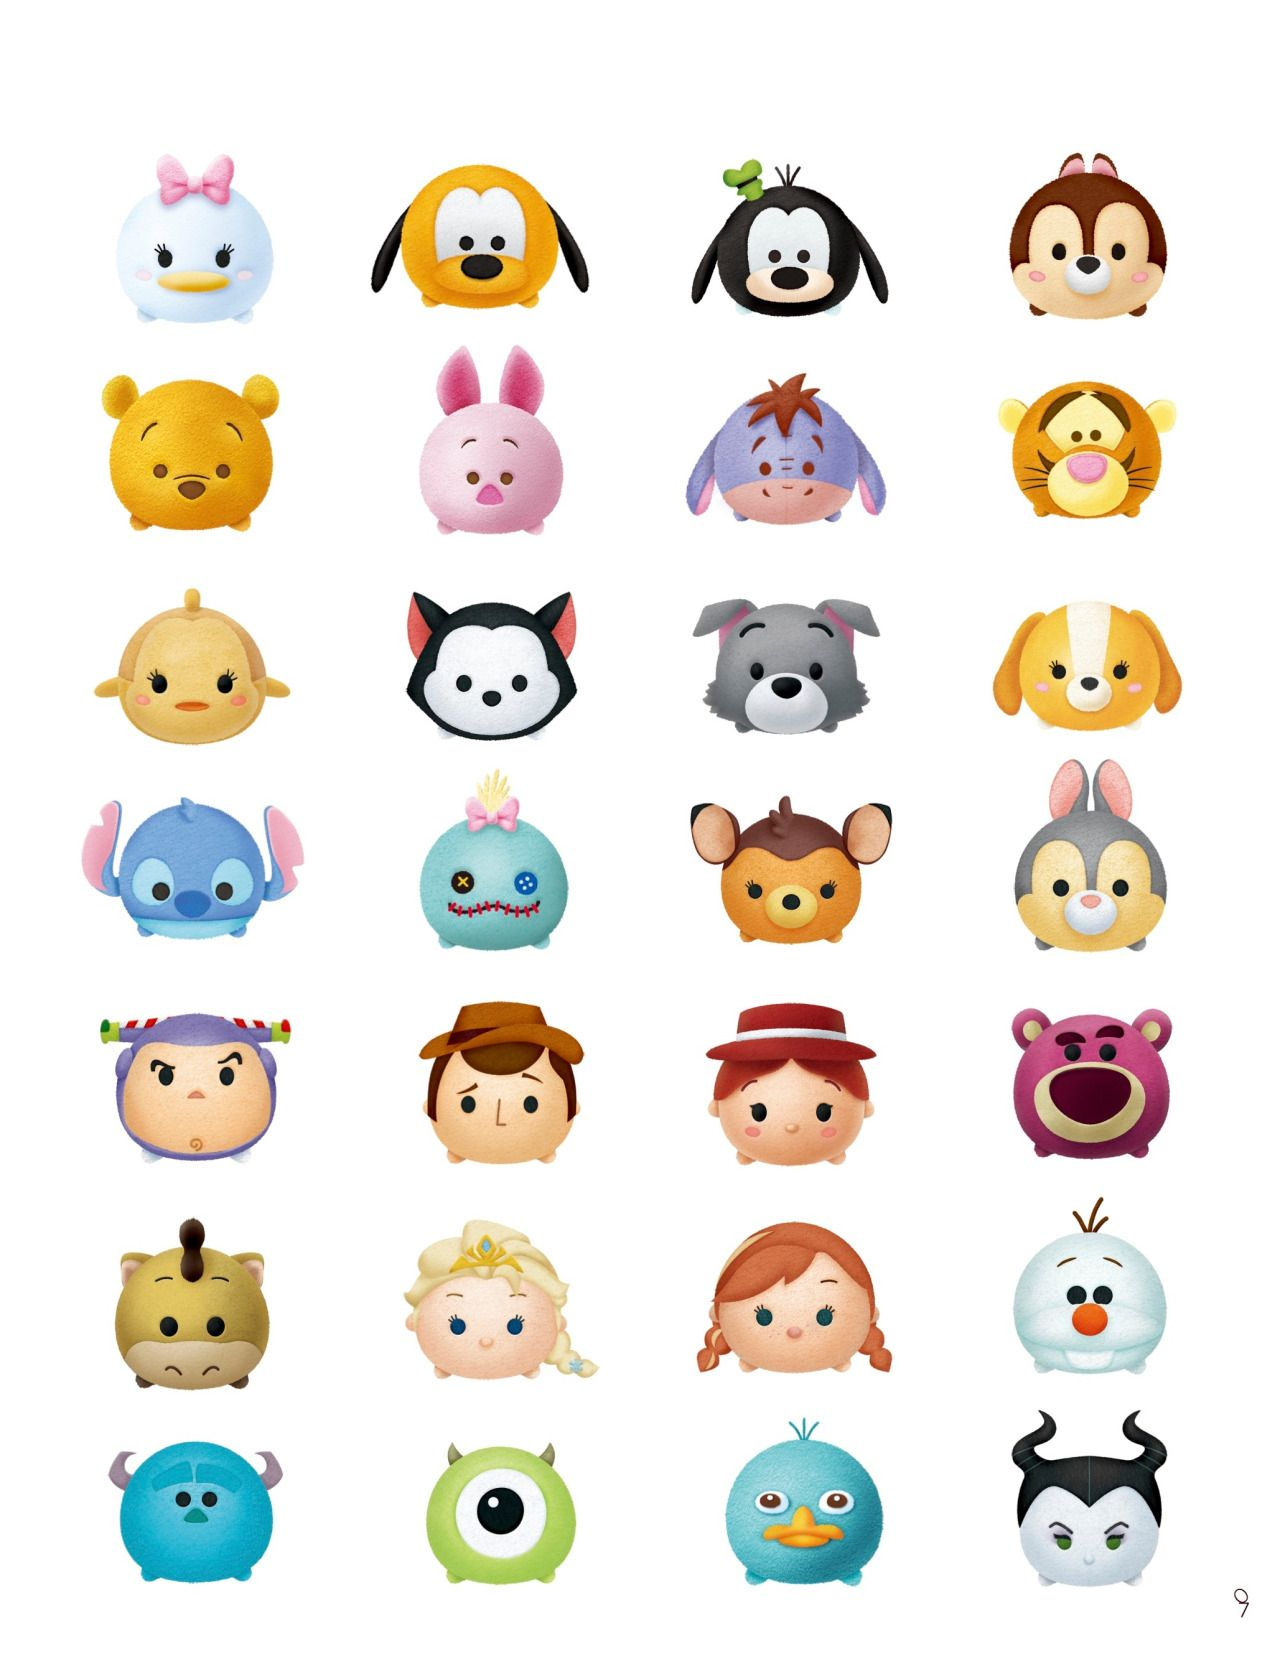 Stitchkingdom Disney Tsum Tsum Cute Disney Drawings Disney Drawings